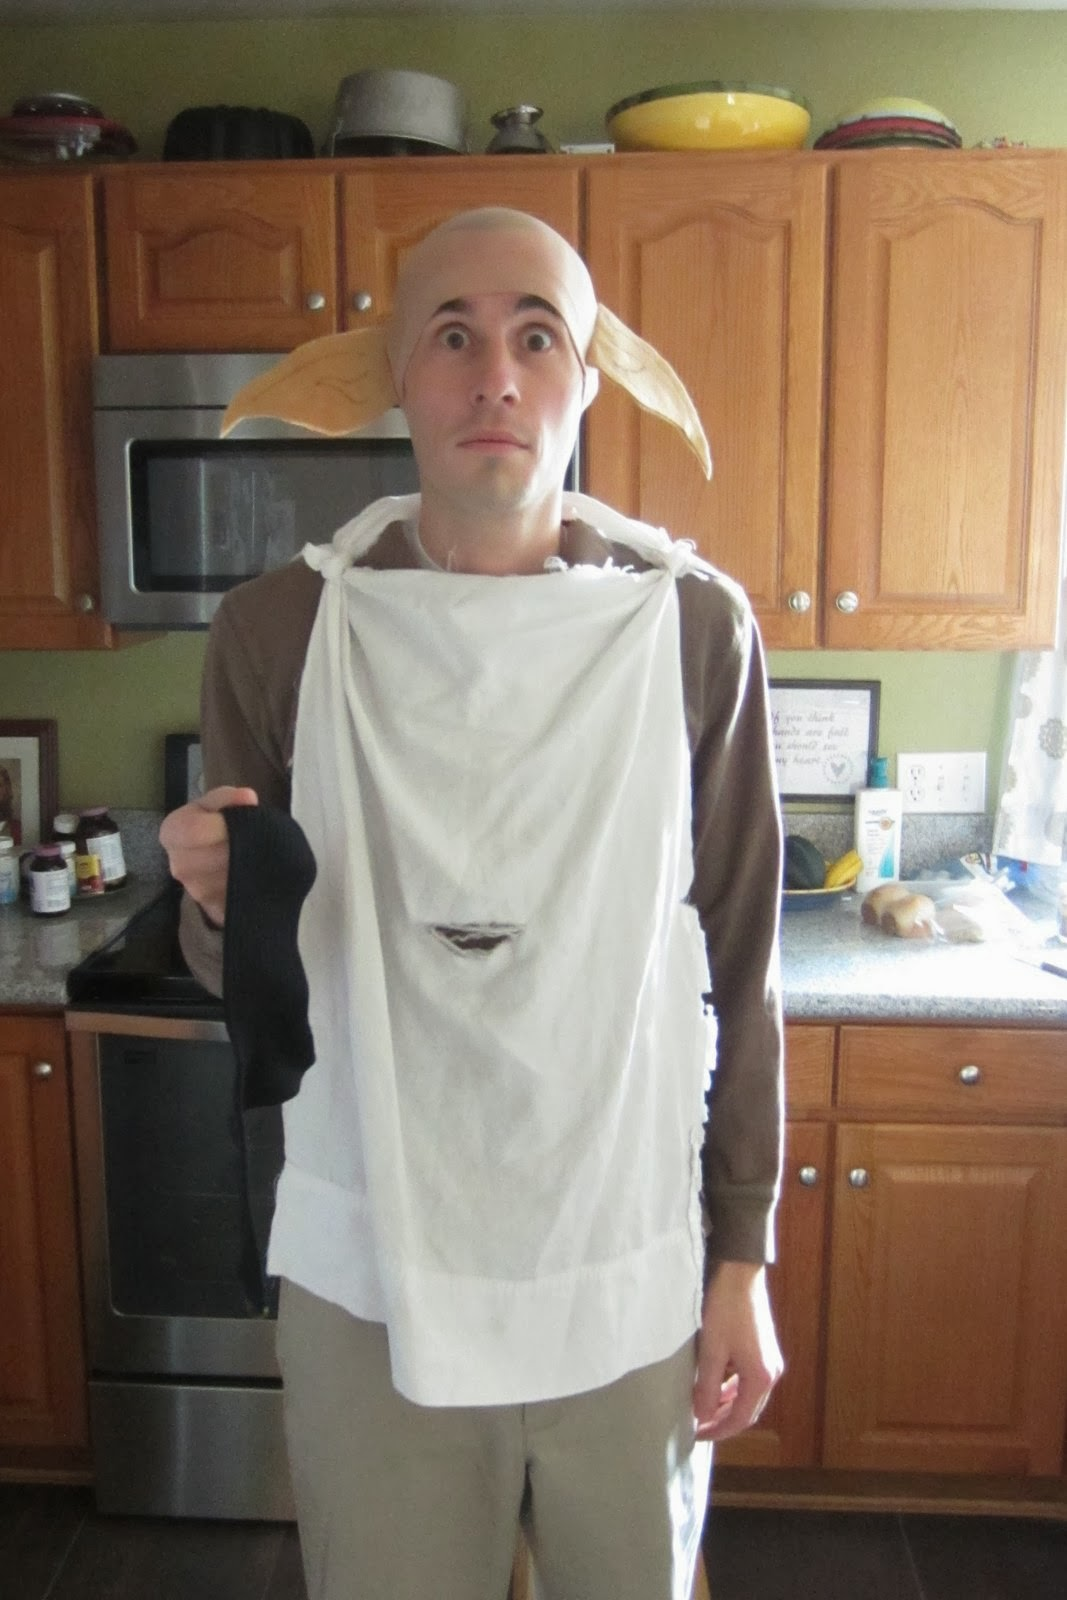 sc 1 st  the Princess and the Pea & the Princess and the Pea: Halloween Costume #3 -- Dobby the House Elf